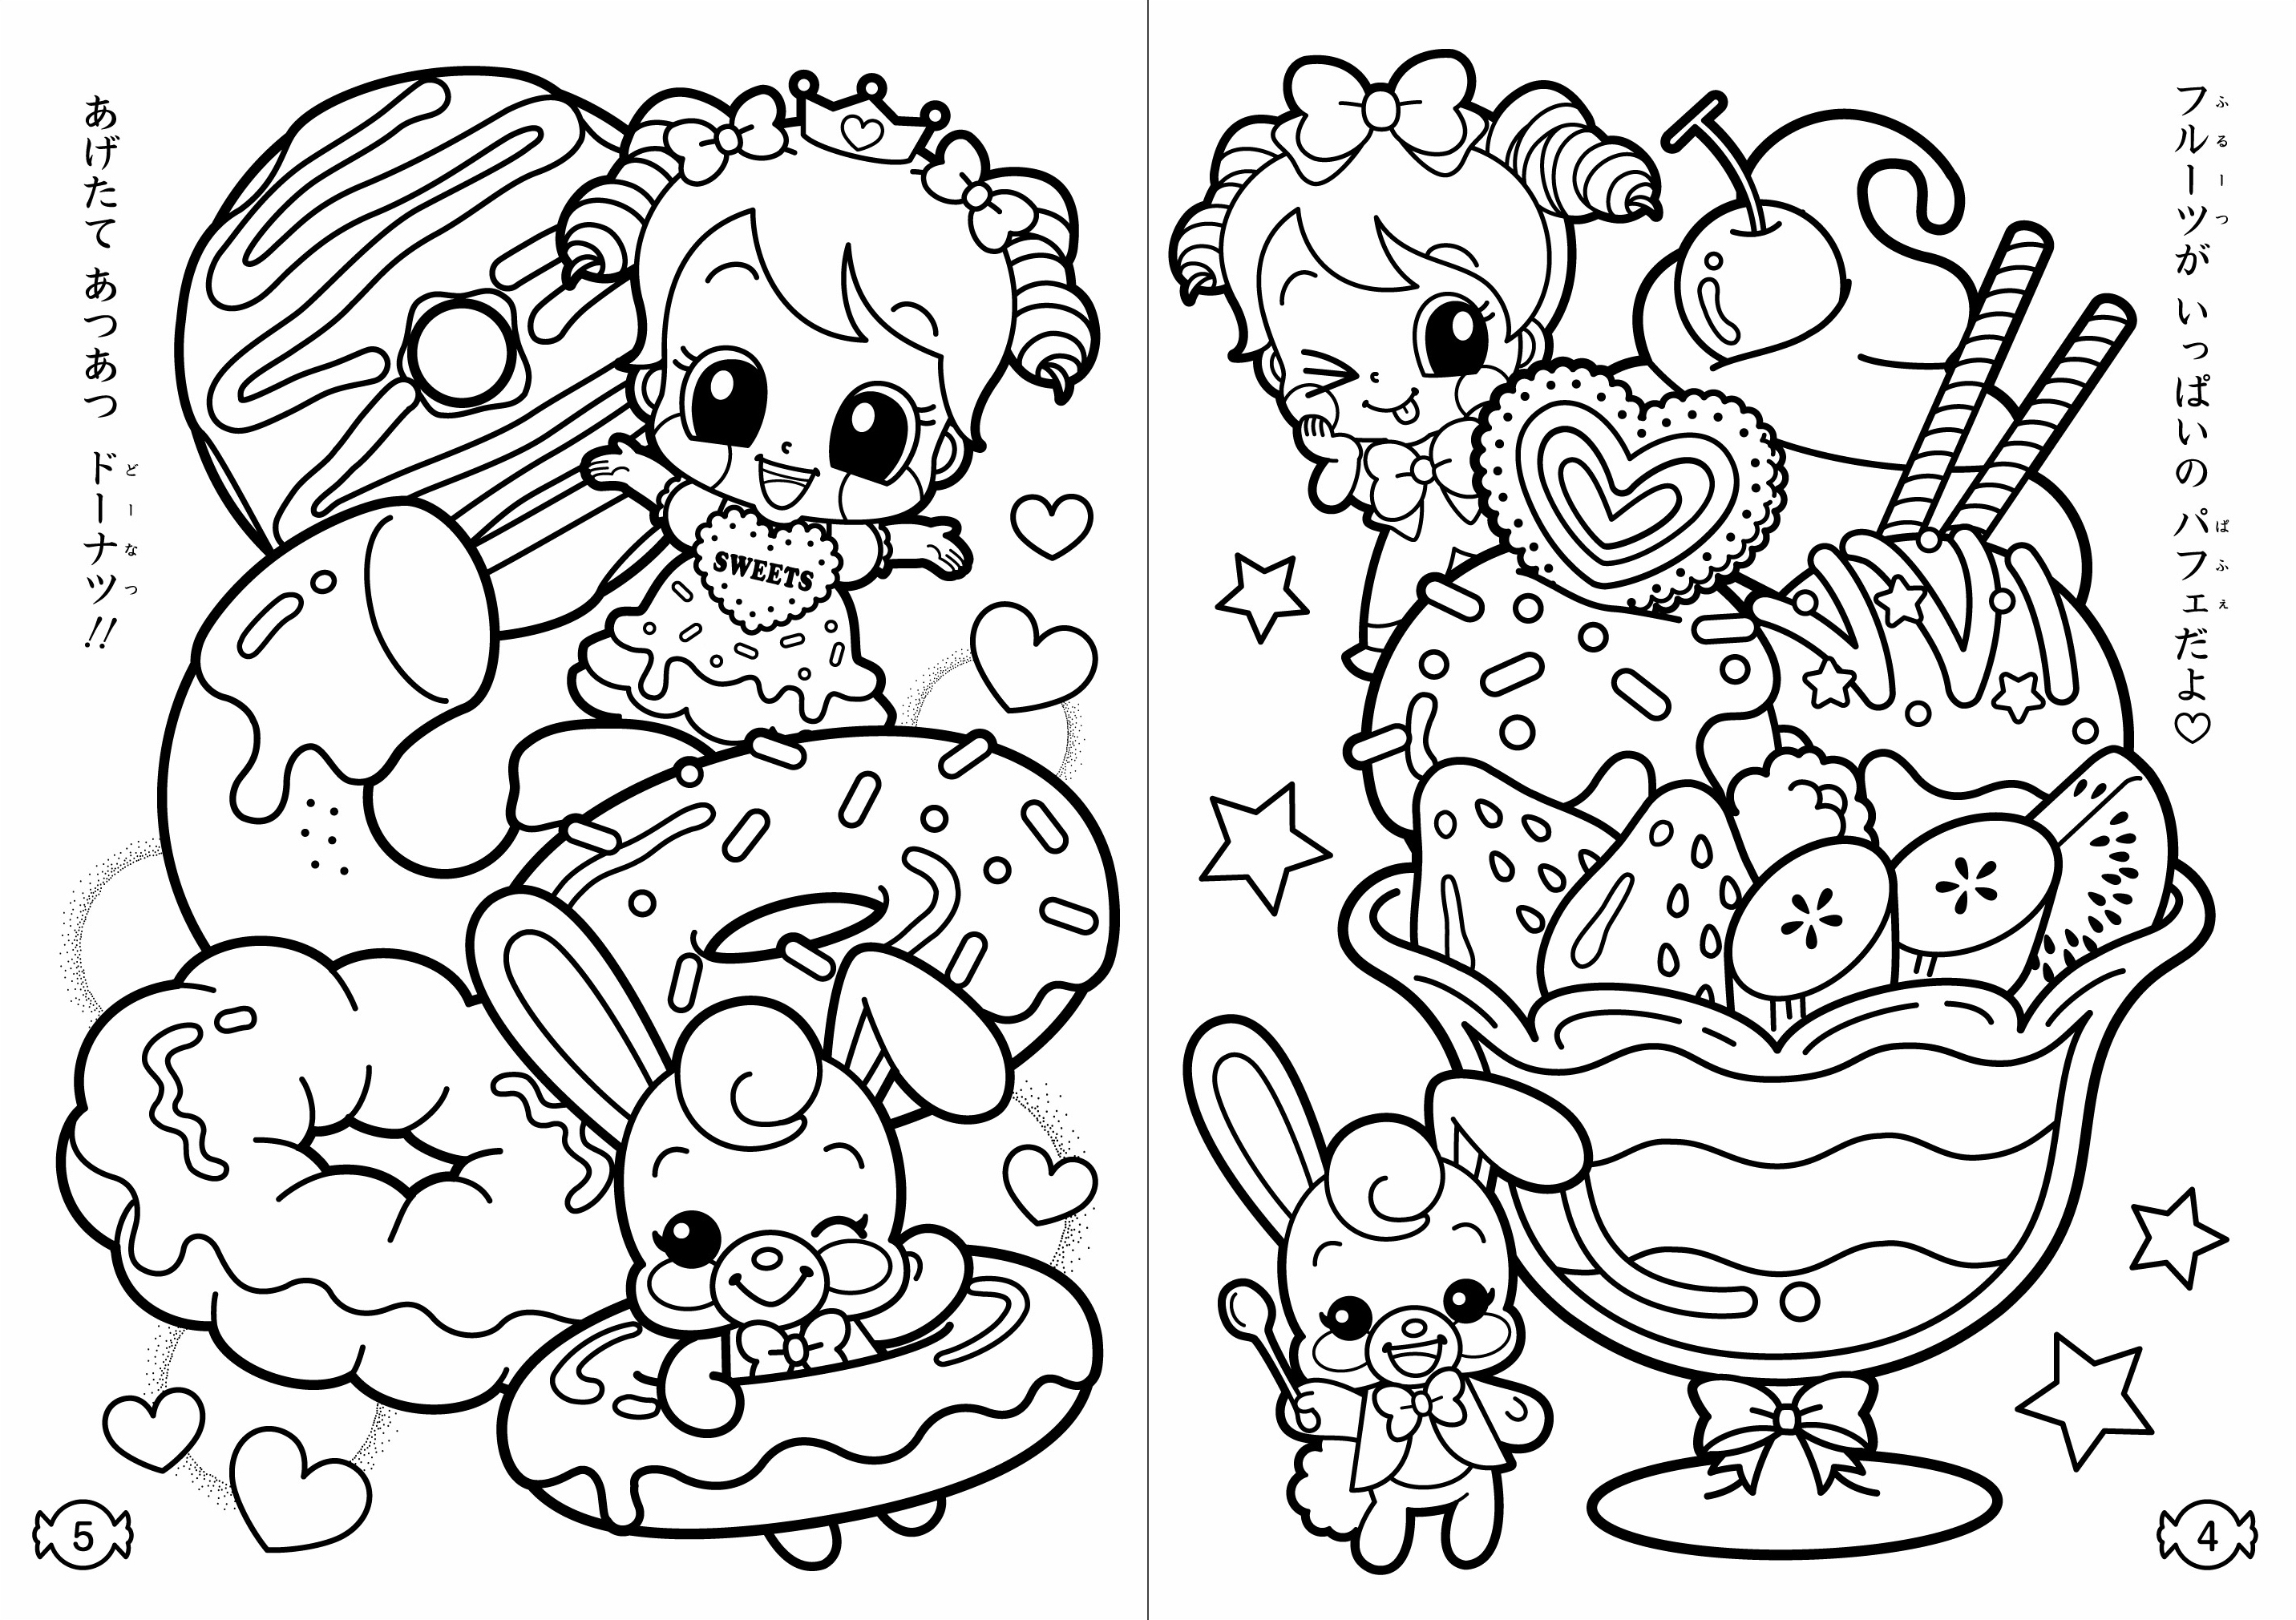 graphic about Printable Kawaii Coloring Pages known as Free of charge Printable Kawaii Coloring Webpages